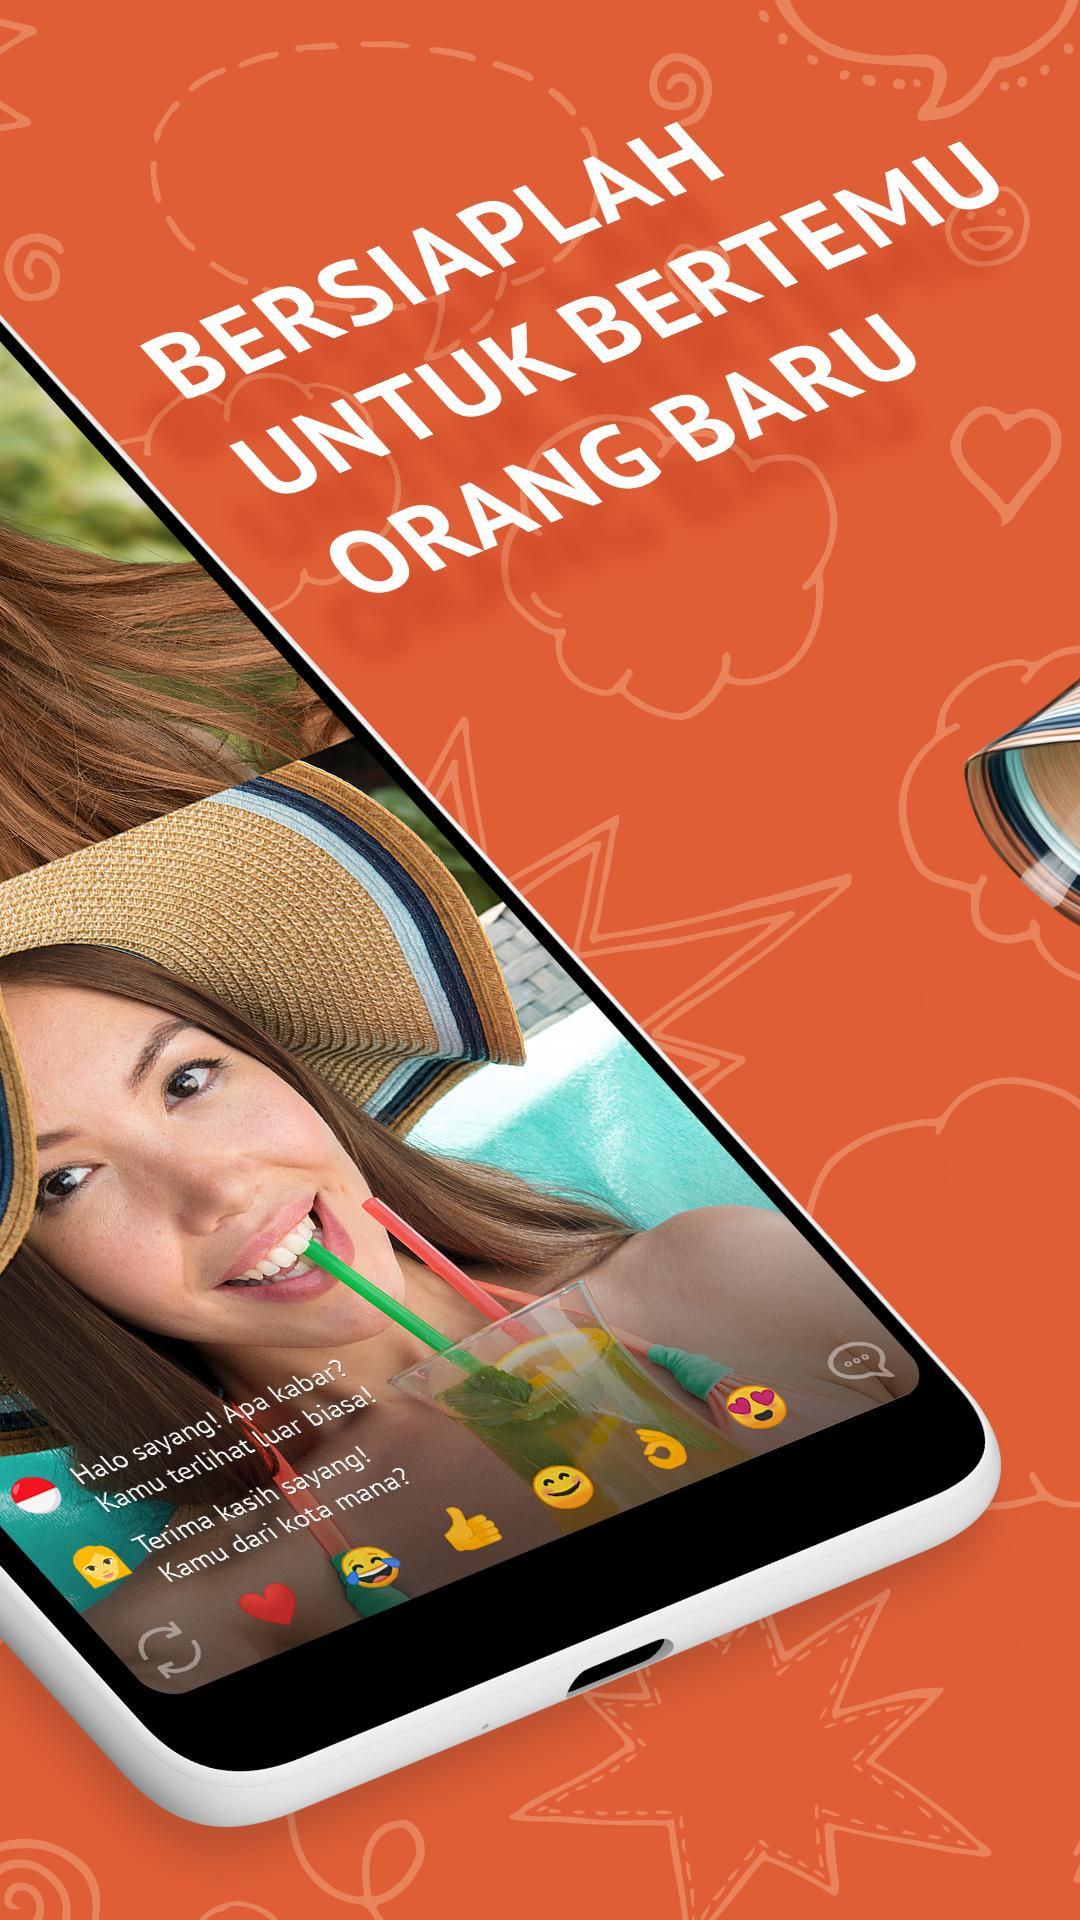 ometv for android apk download